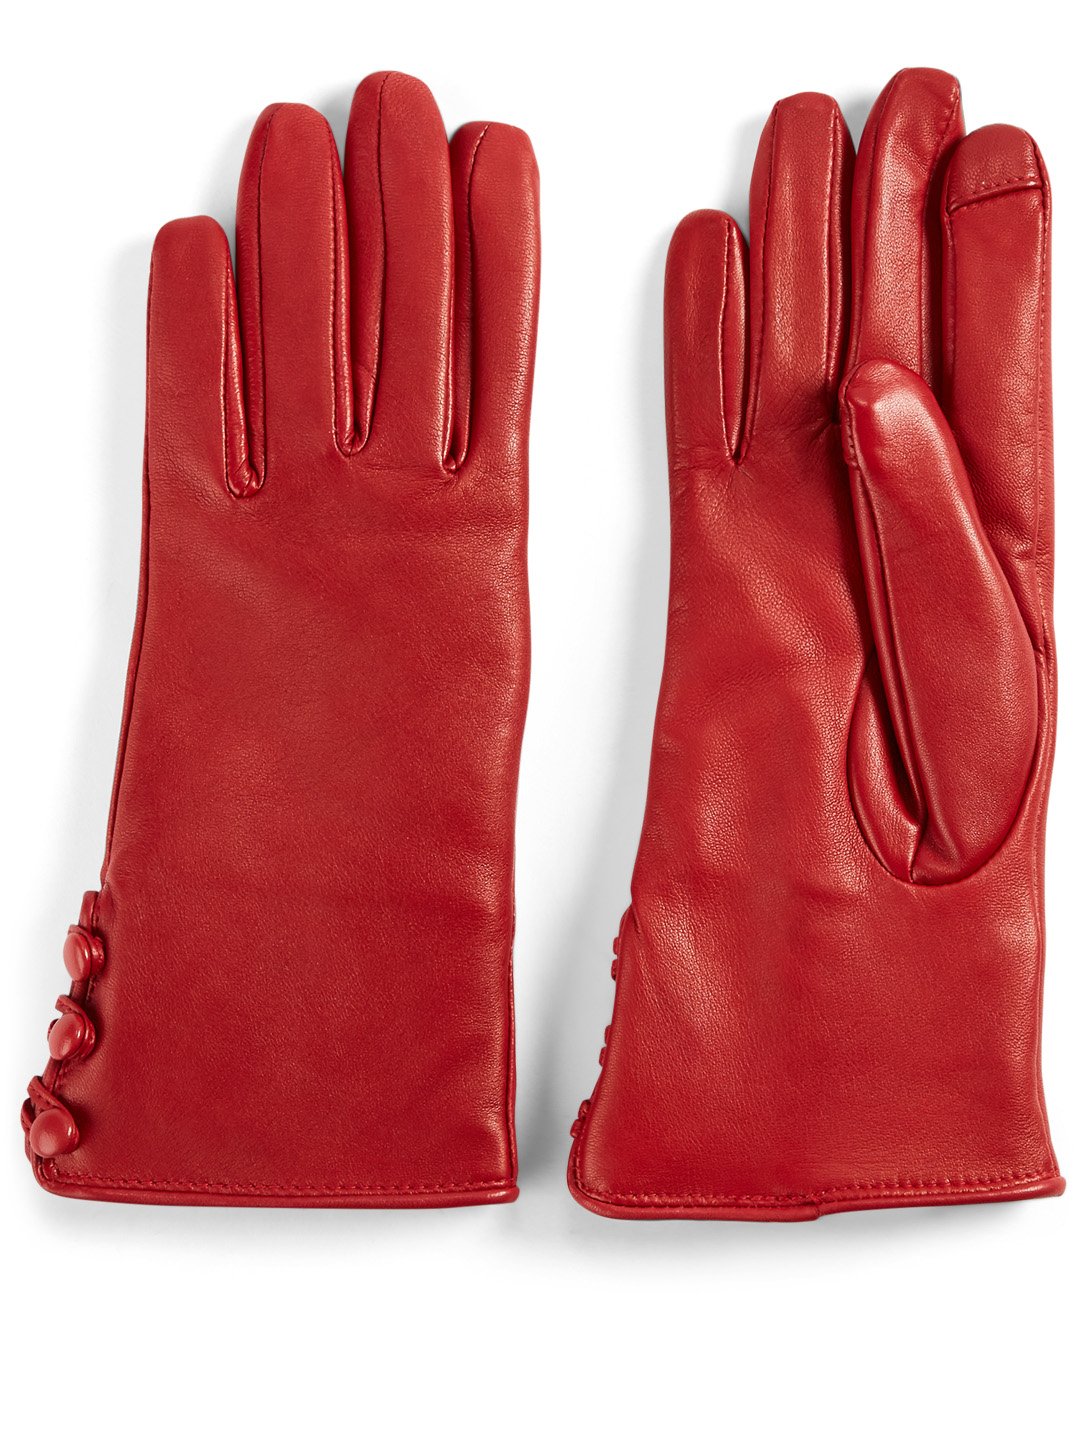 FOWNES BROTHERS & CO. Fur-Lined Leather Tech Gloves Collections Red